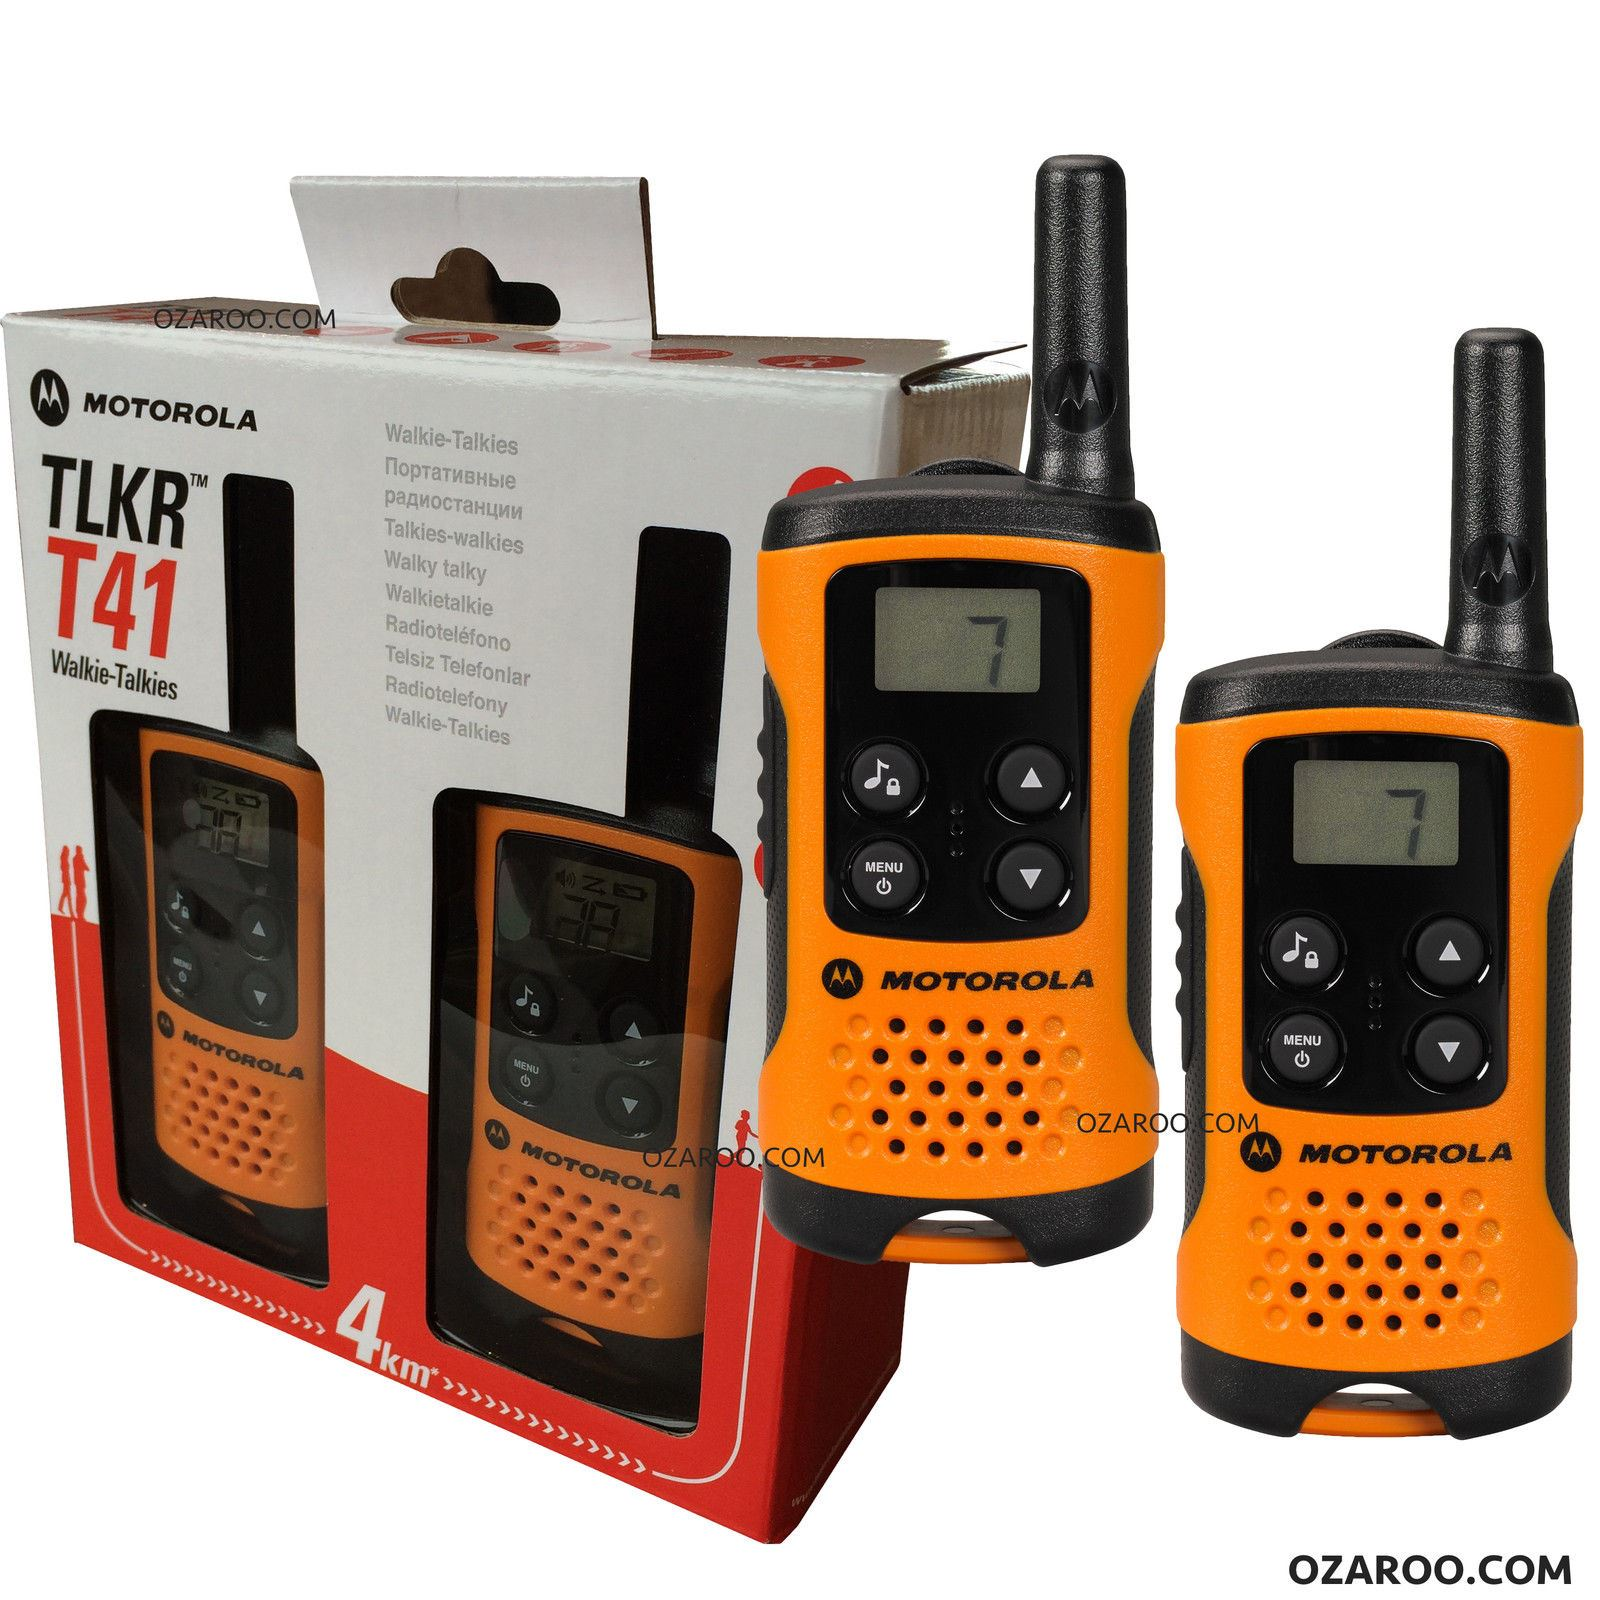 motorola tlkr t41 2 way walkie talkie gift set pmr 446. Black Bedroom Furniture Sets. Home Design Ideas